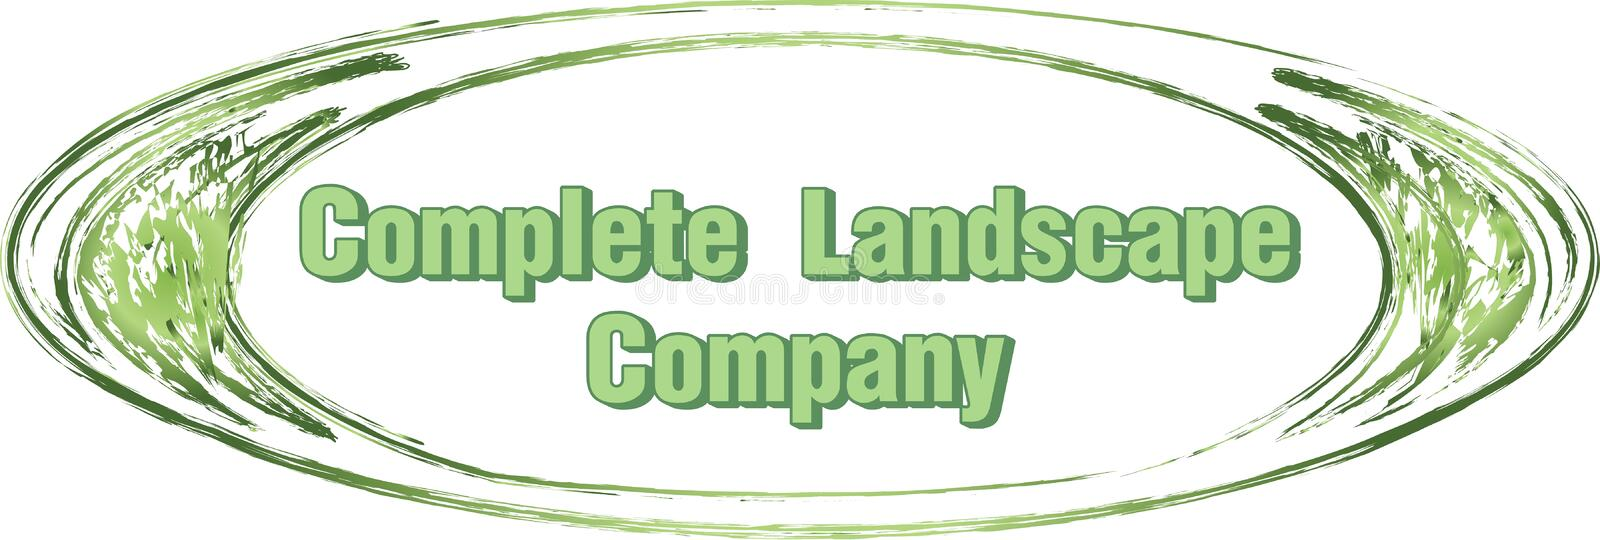 Landscape company logo design circle brand emblem label lawn mowing care maintenance. A perfect logo from any lawn care company in need of a logo. I do have the royalty free illustration